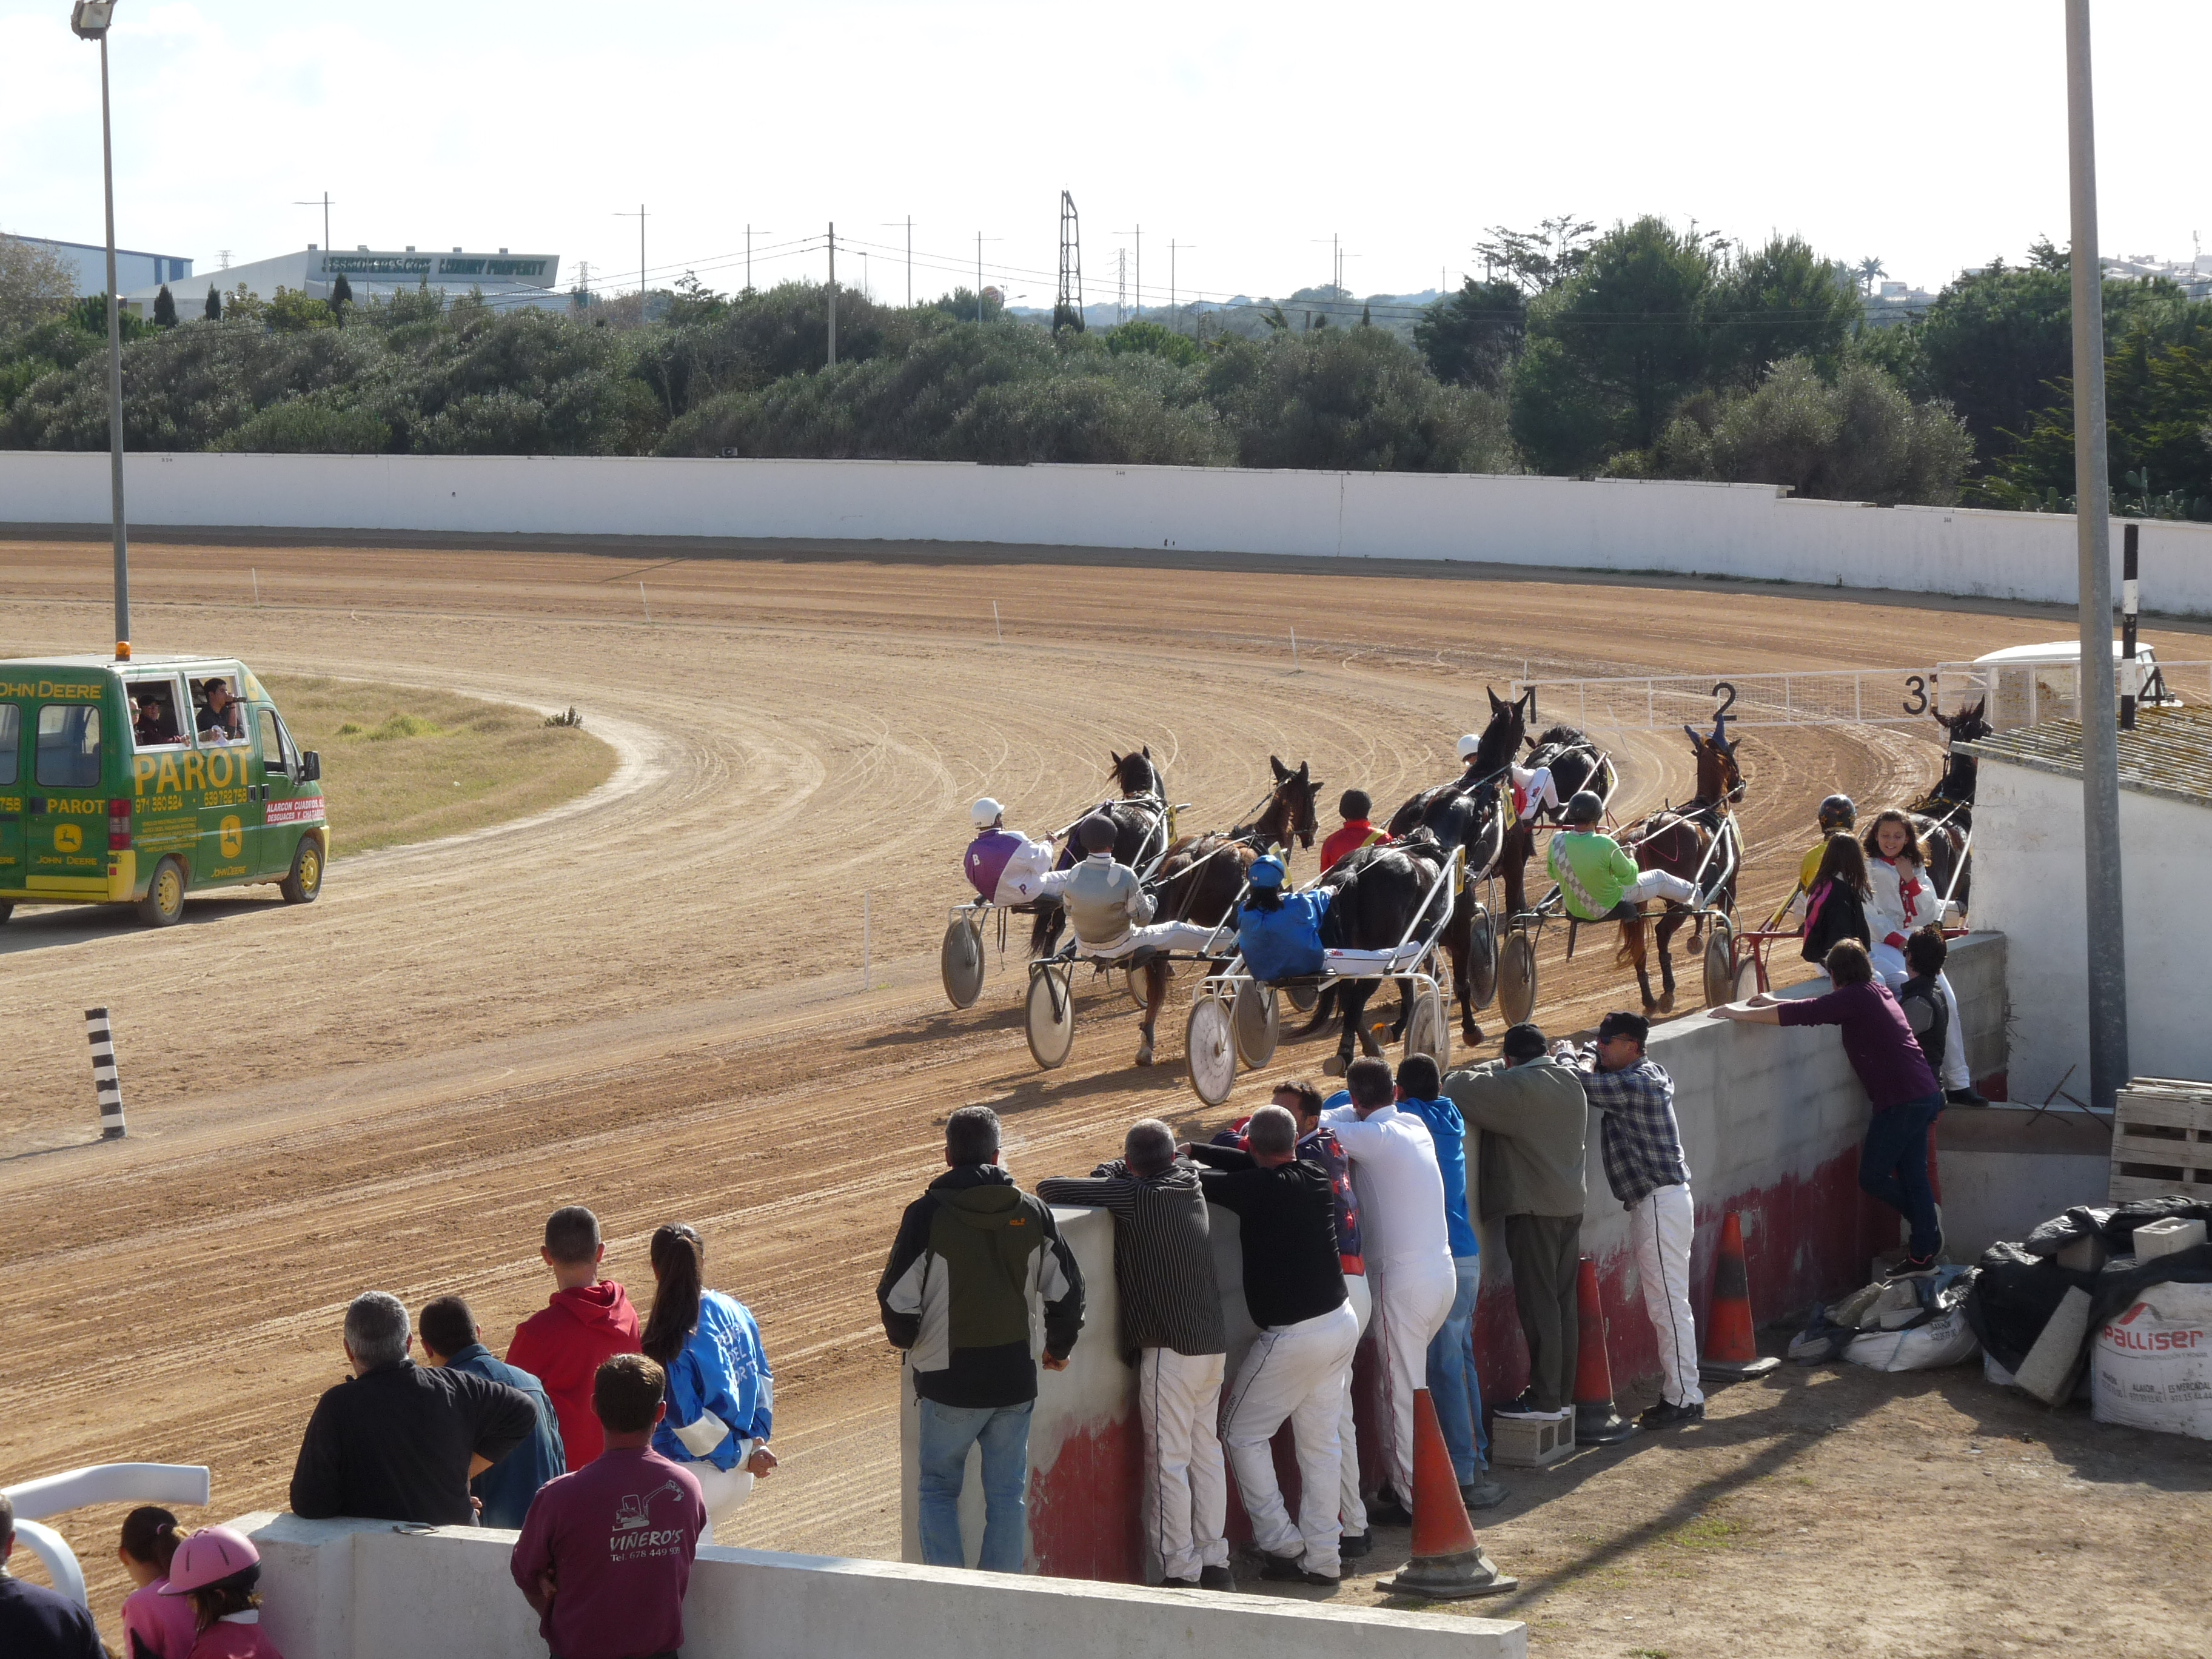 sortidacarrera - A day at the races